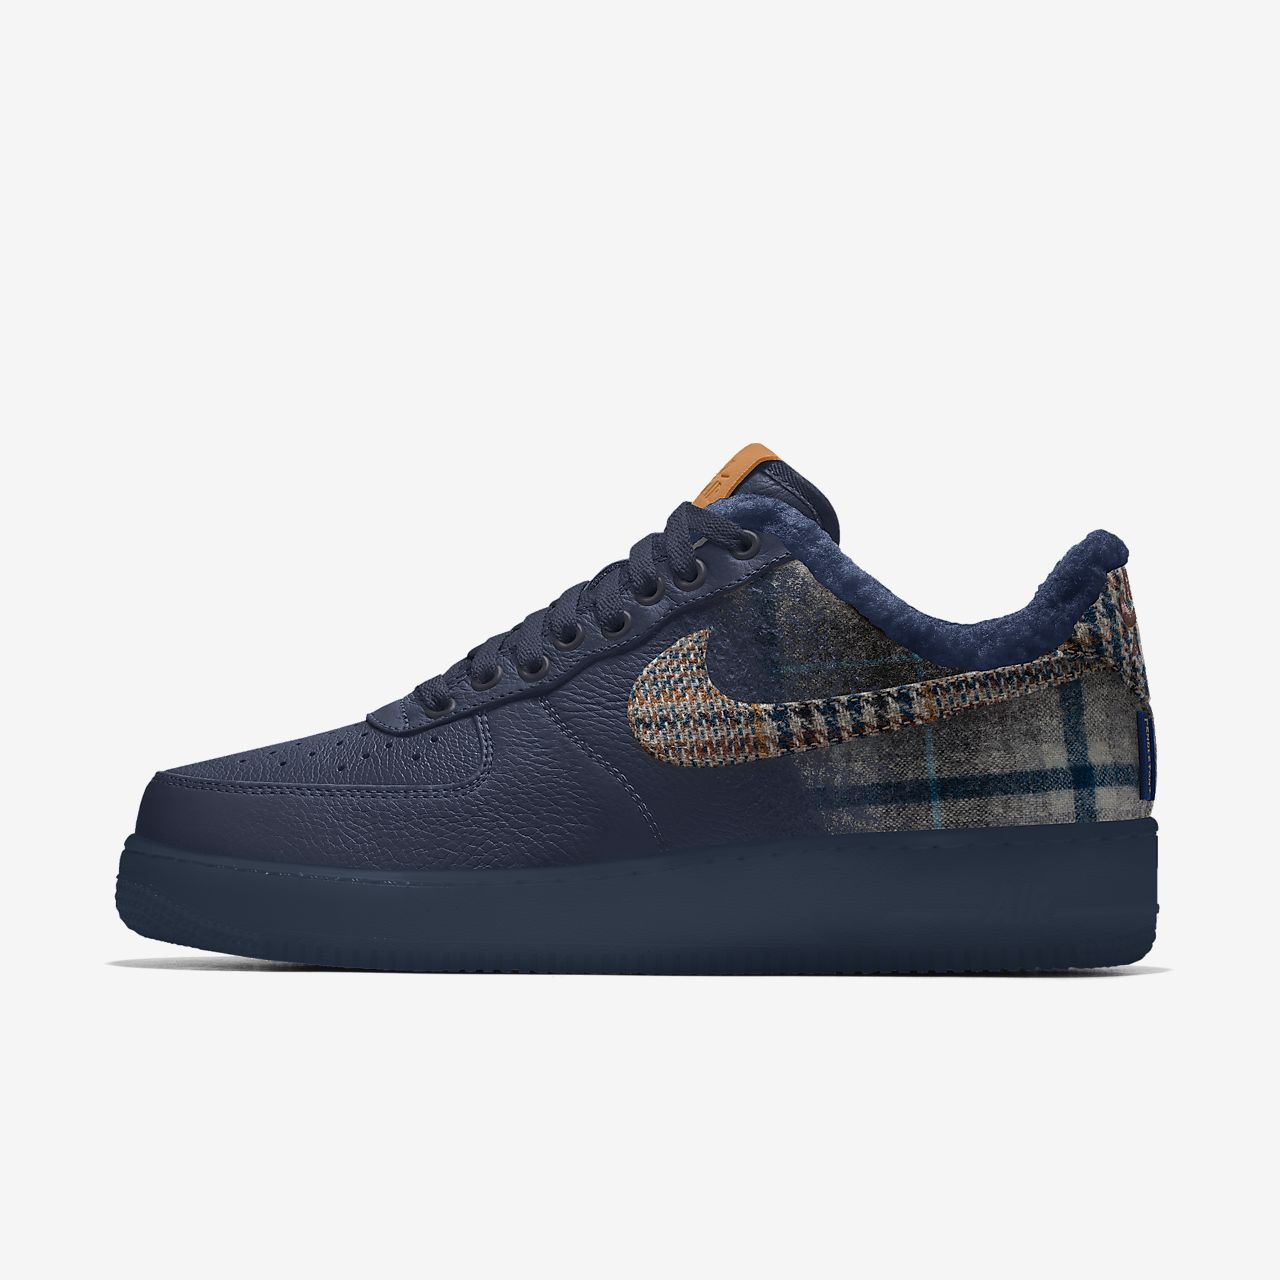 Chaussure personnalisable Nike Air Force 1 Low Pendleton By You pour Homme